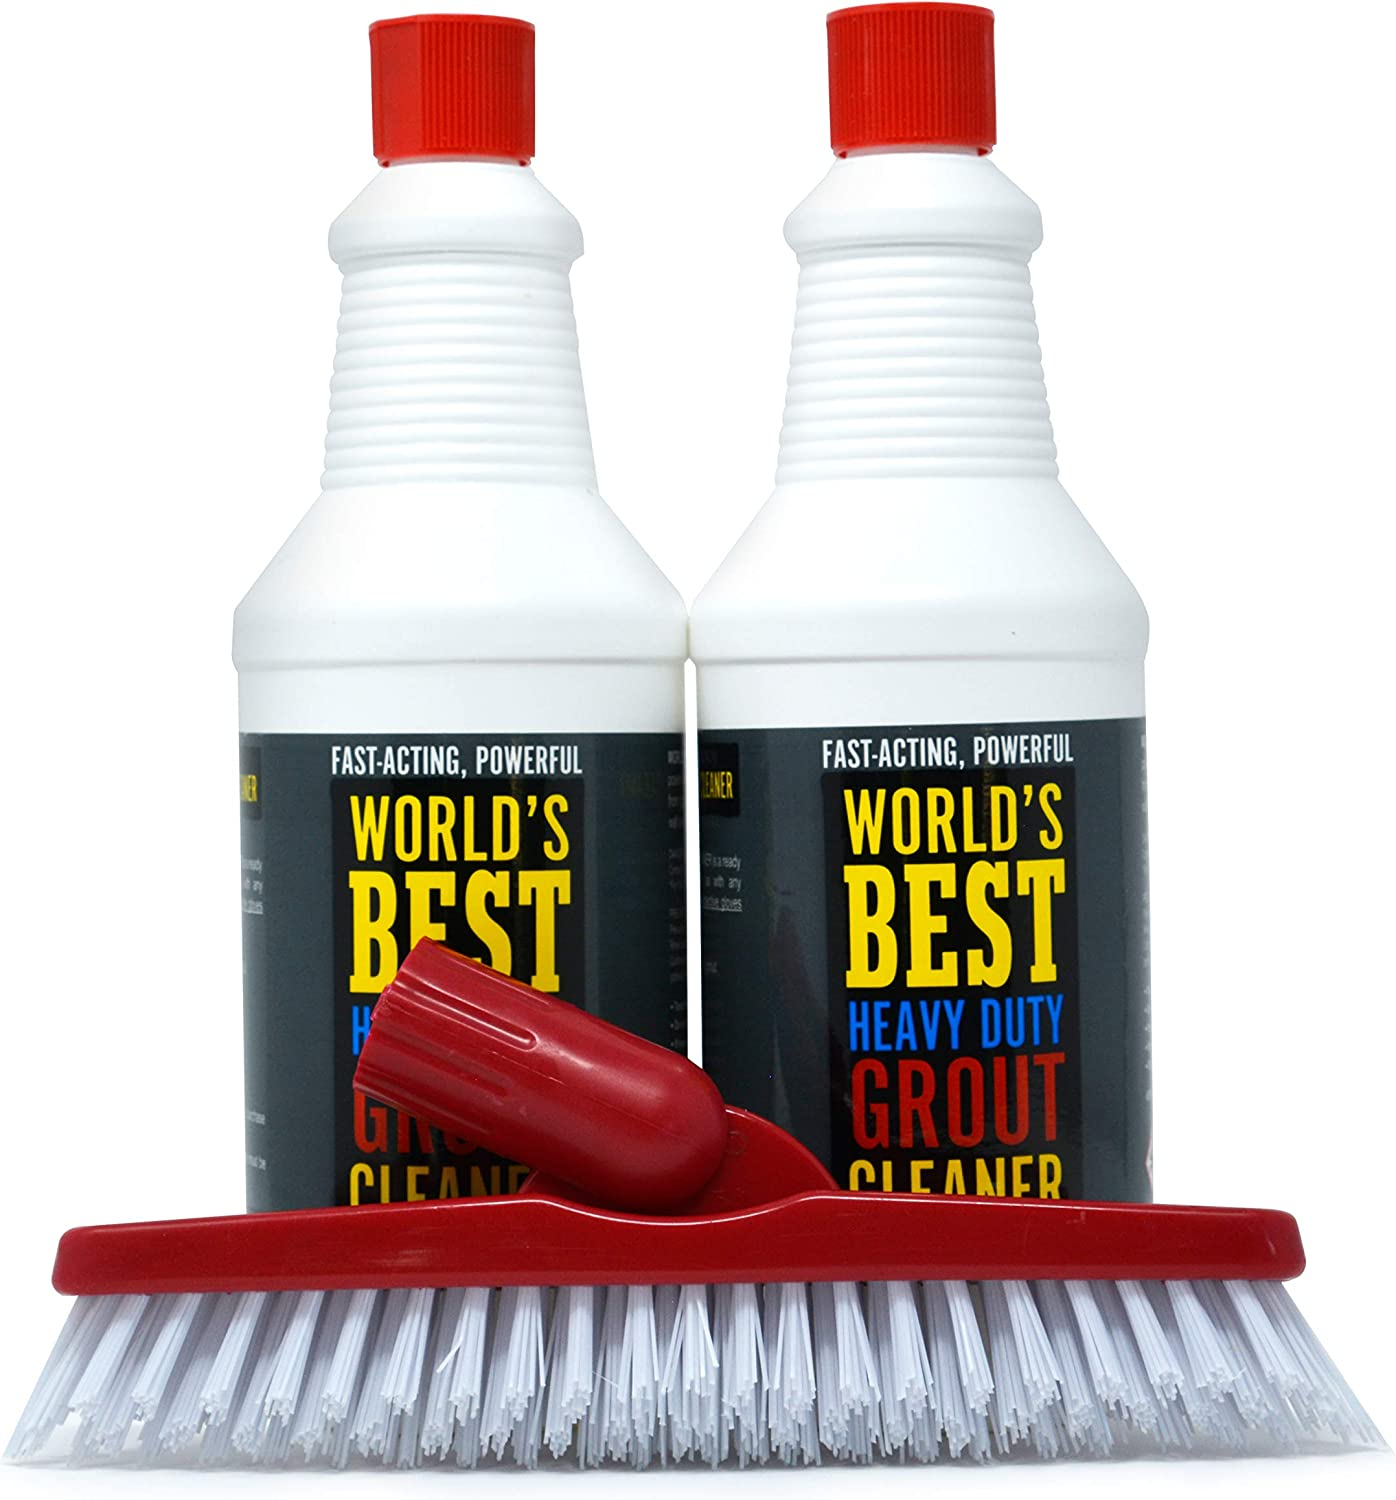 World's Best Heavy Duty Grout Cleaner is a Powerful Tile Cleaner and Grout Cleaner That Removes Years of Dirty Build Up. Great Bathroom Tile Cleaner and Shower Tile Cleaner. Free Grout Brush Included